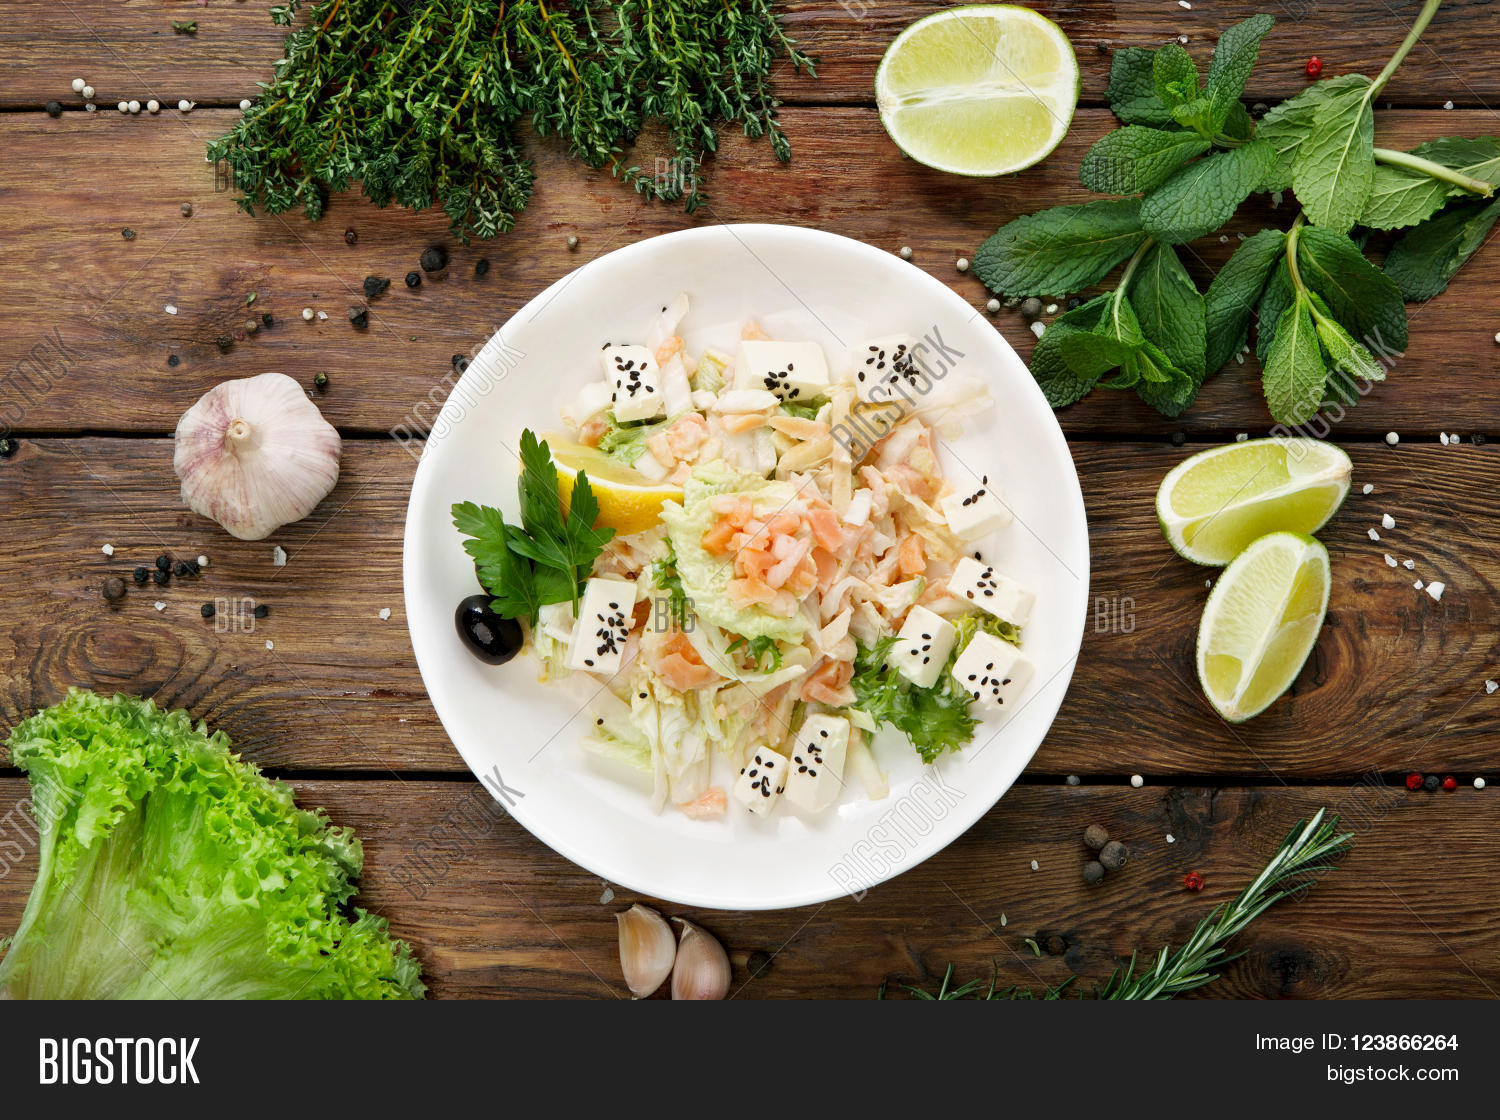 Restaurant Healthy Food Fish Salad Smoked Salty Salmon At Rustic Wooden Background With